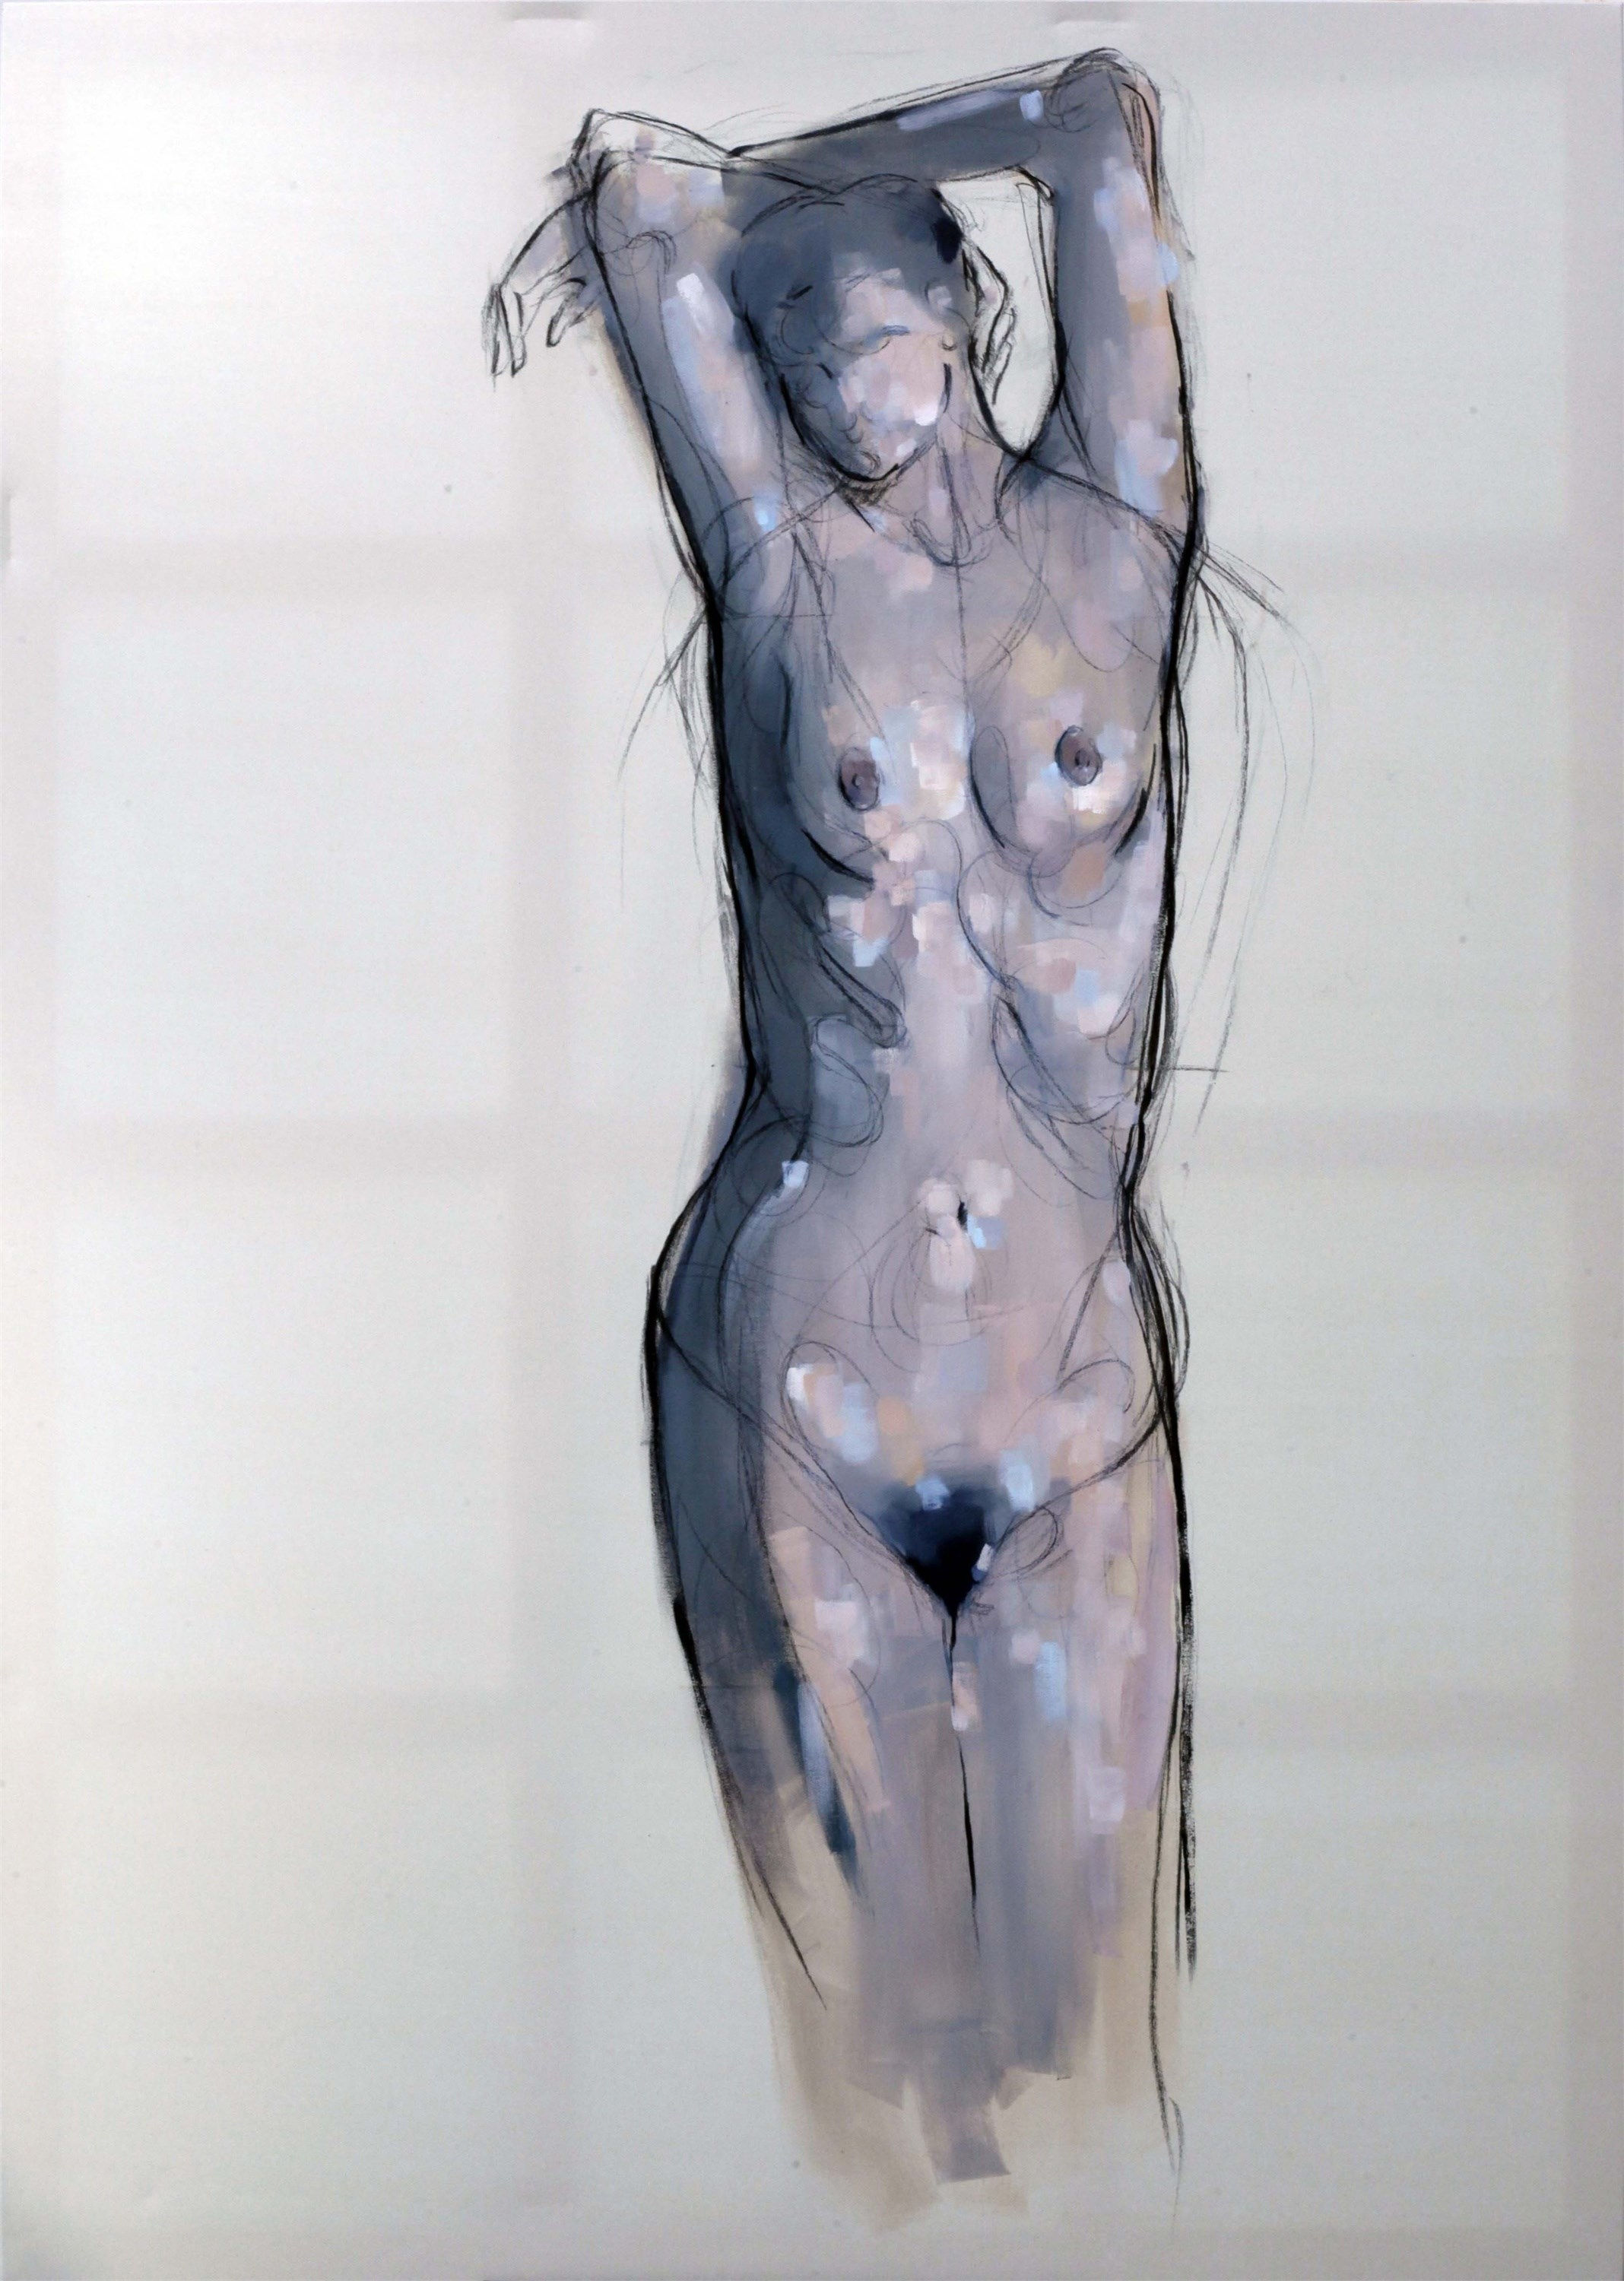 Untitled, original Body Canvas Painting by Giorgos Kapsalakis